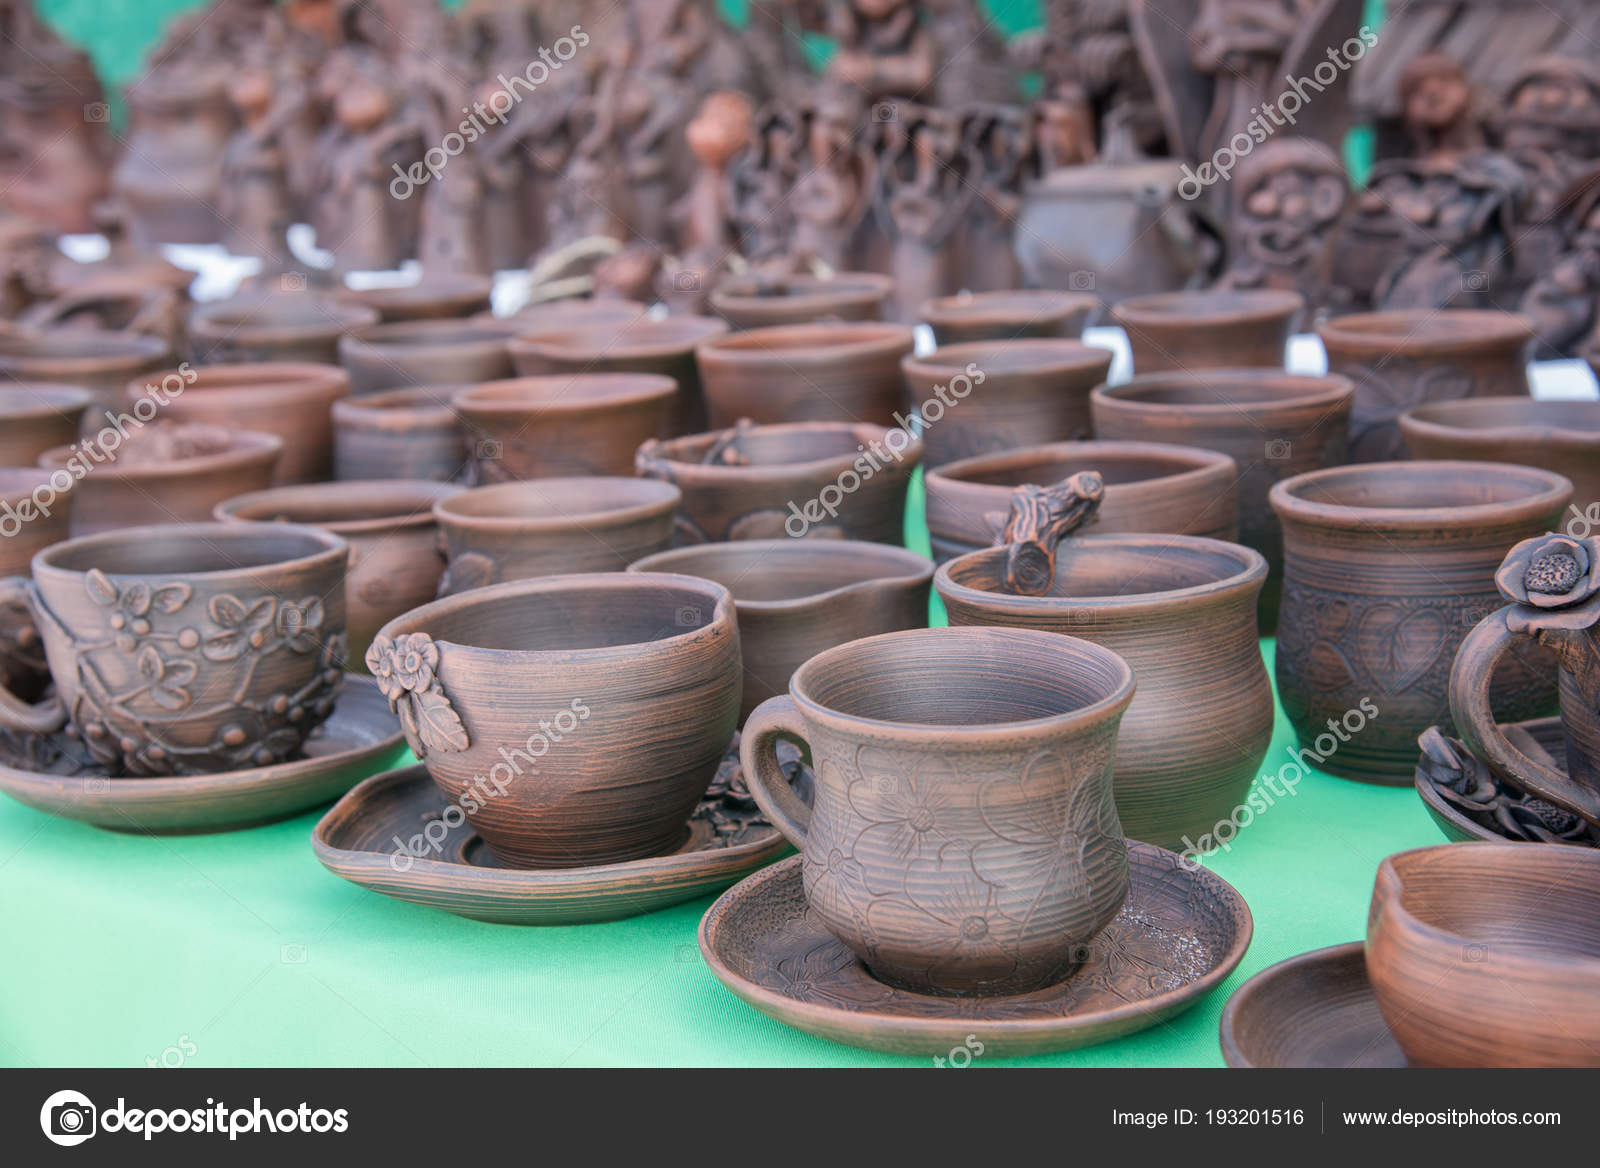 Beautiful Pottery Mugs Of Brown Color Handmade On The Market Stock Photo C Vox19 193201516